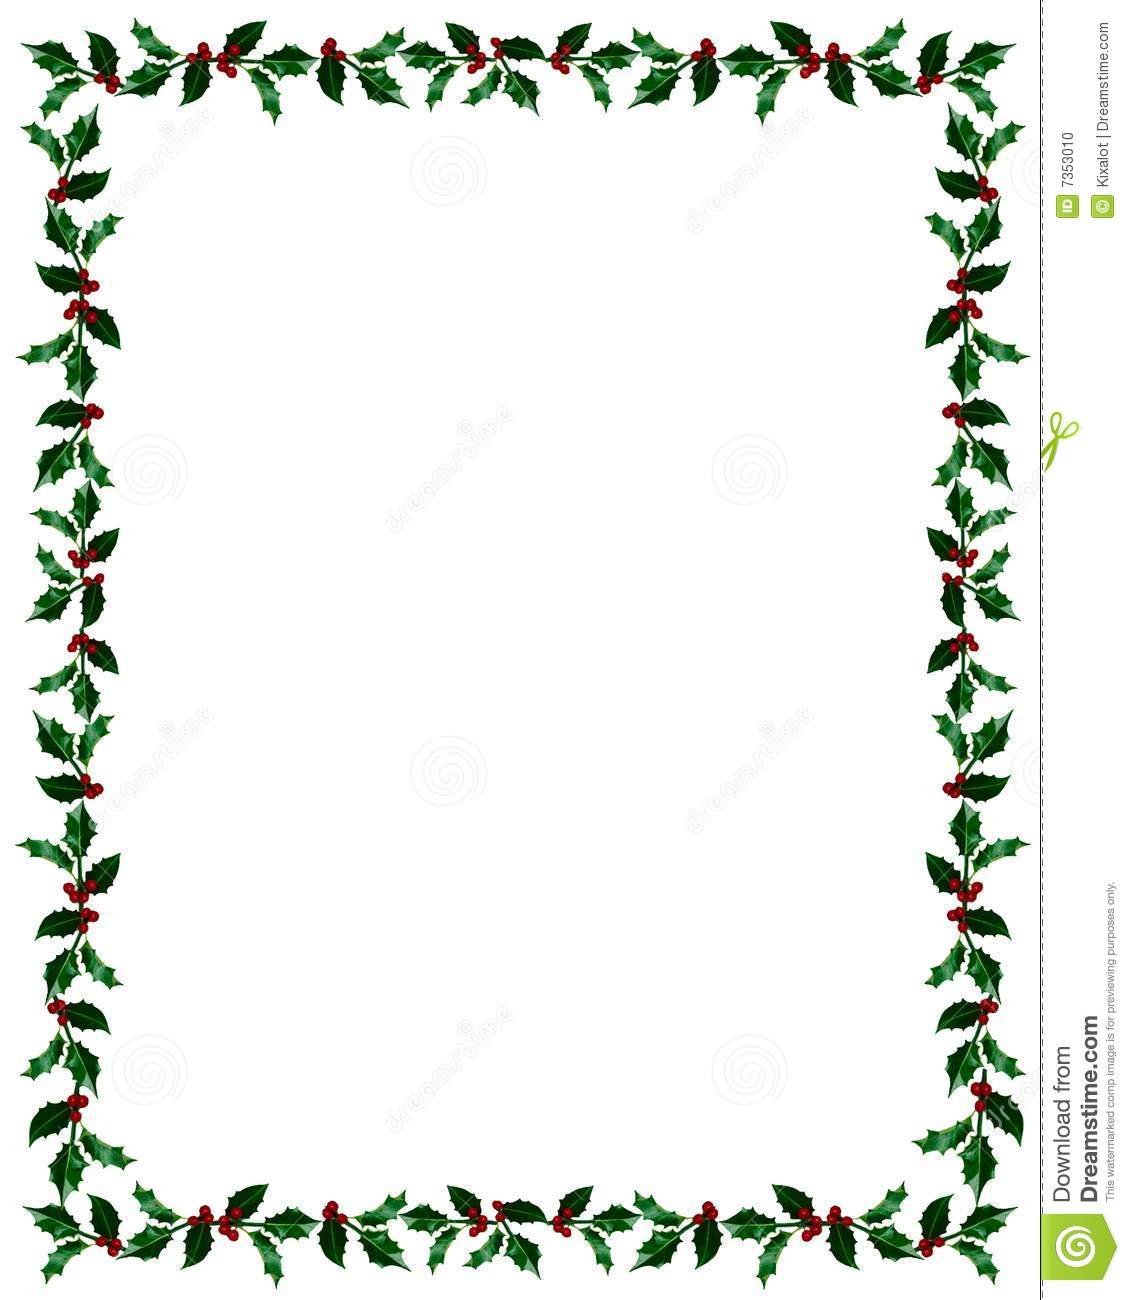 Frame clipart holiday Info Panda Free Clipart Images